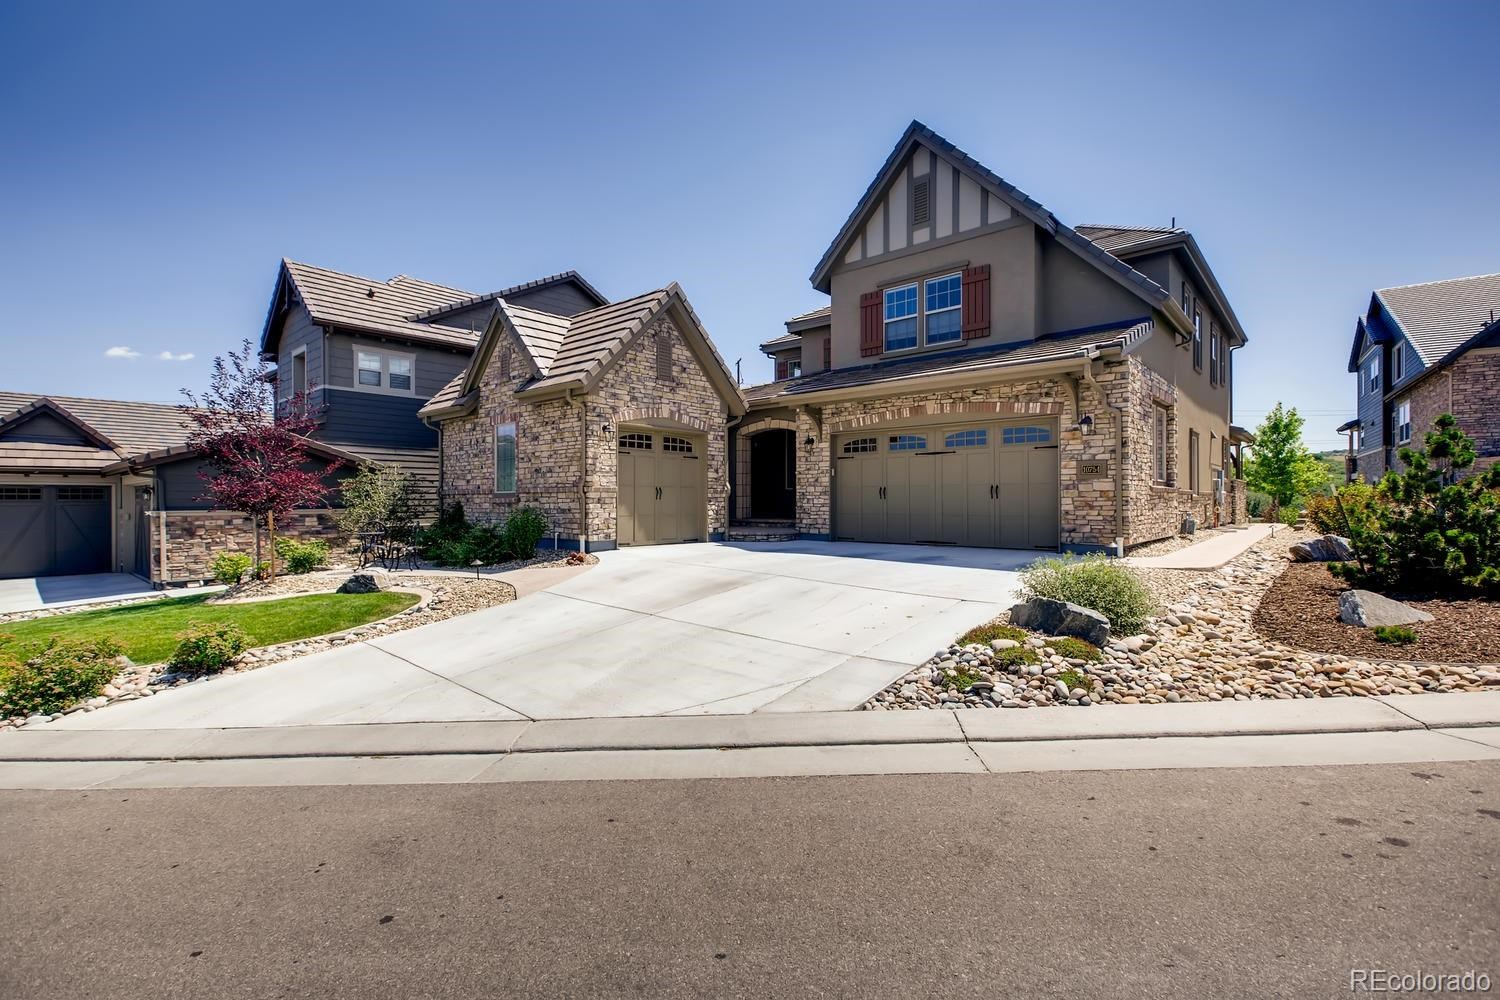 MLS# 5689224 - 1 - 10754 Greycliffe Drive, Highlands Ranch, CO 80126